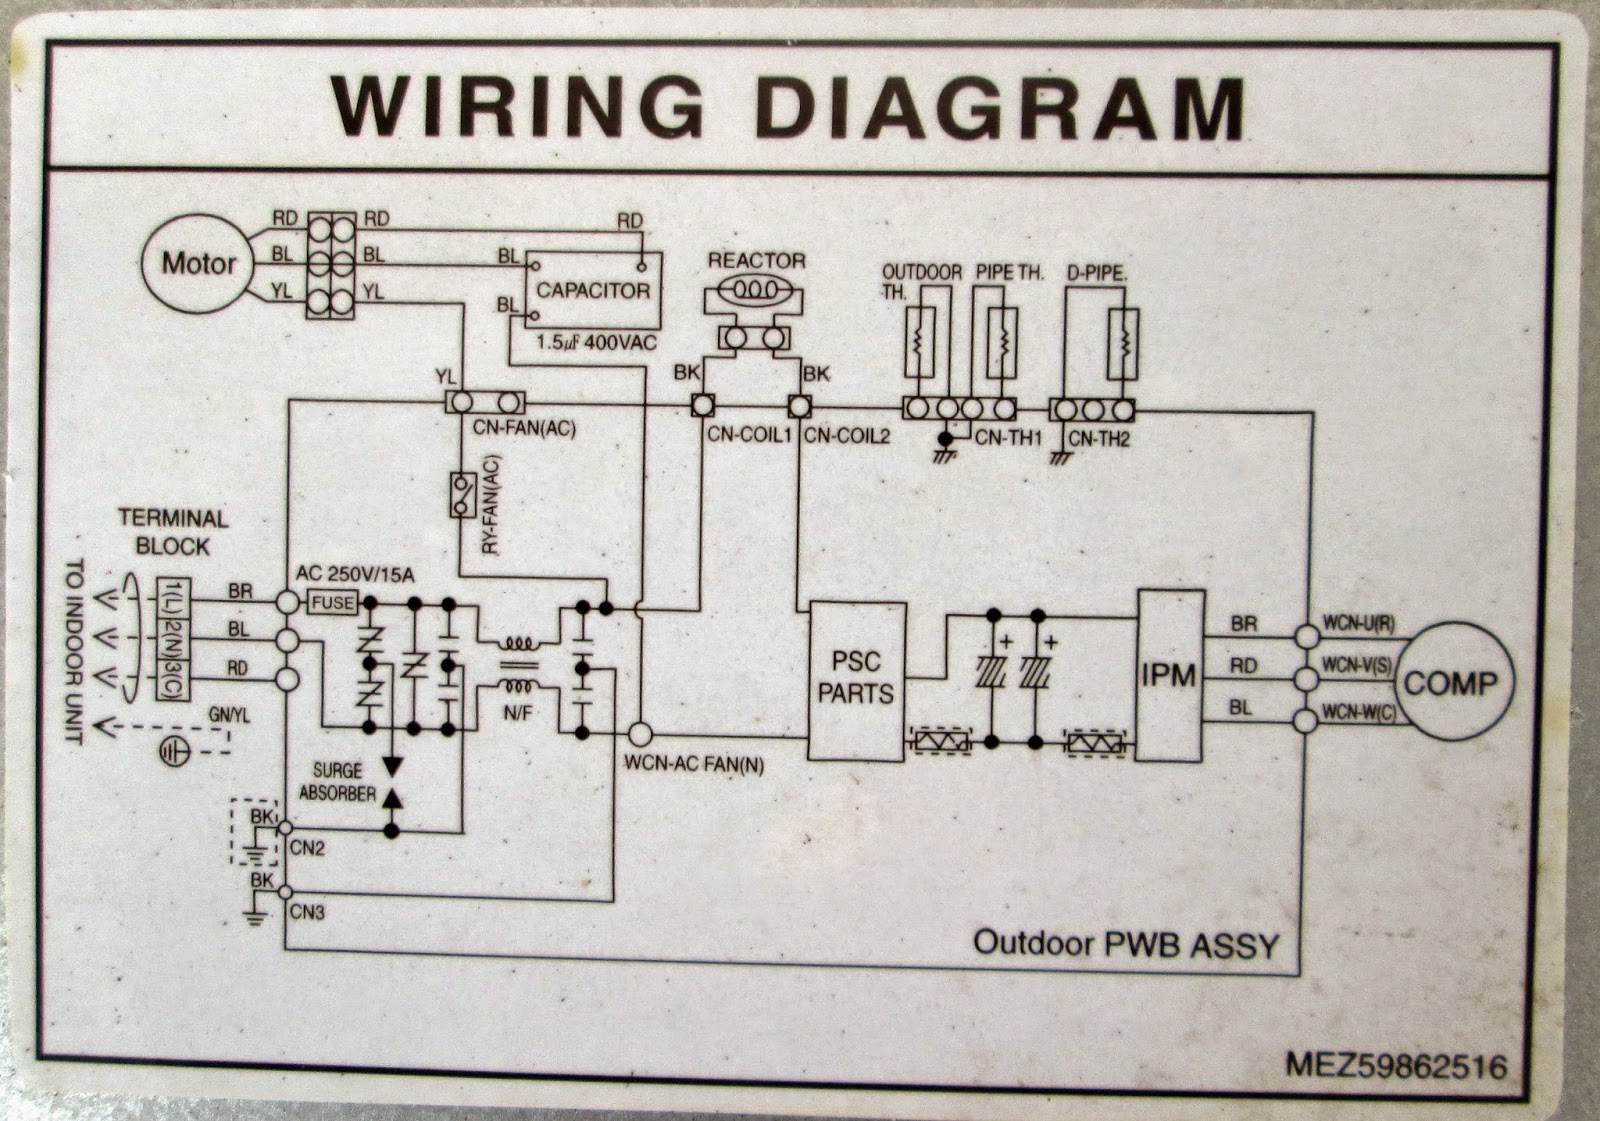 split ac unit wiring diagram wiring diagram show wiring diagram of a split air conditioner single [ 1600 x 1121 Pixel ]